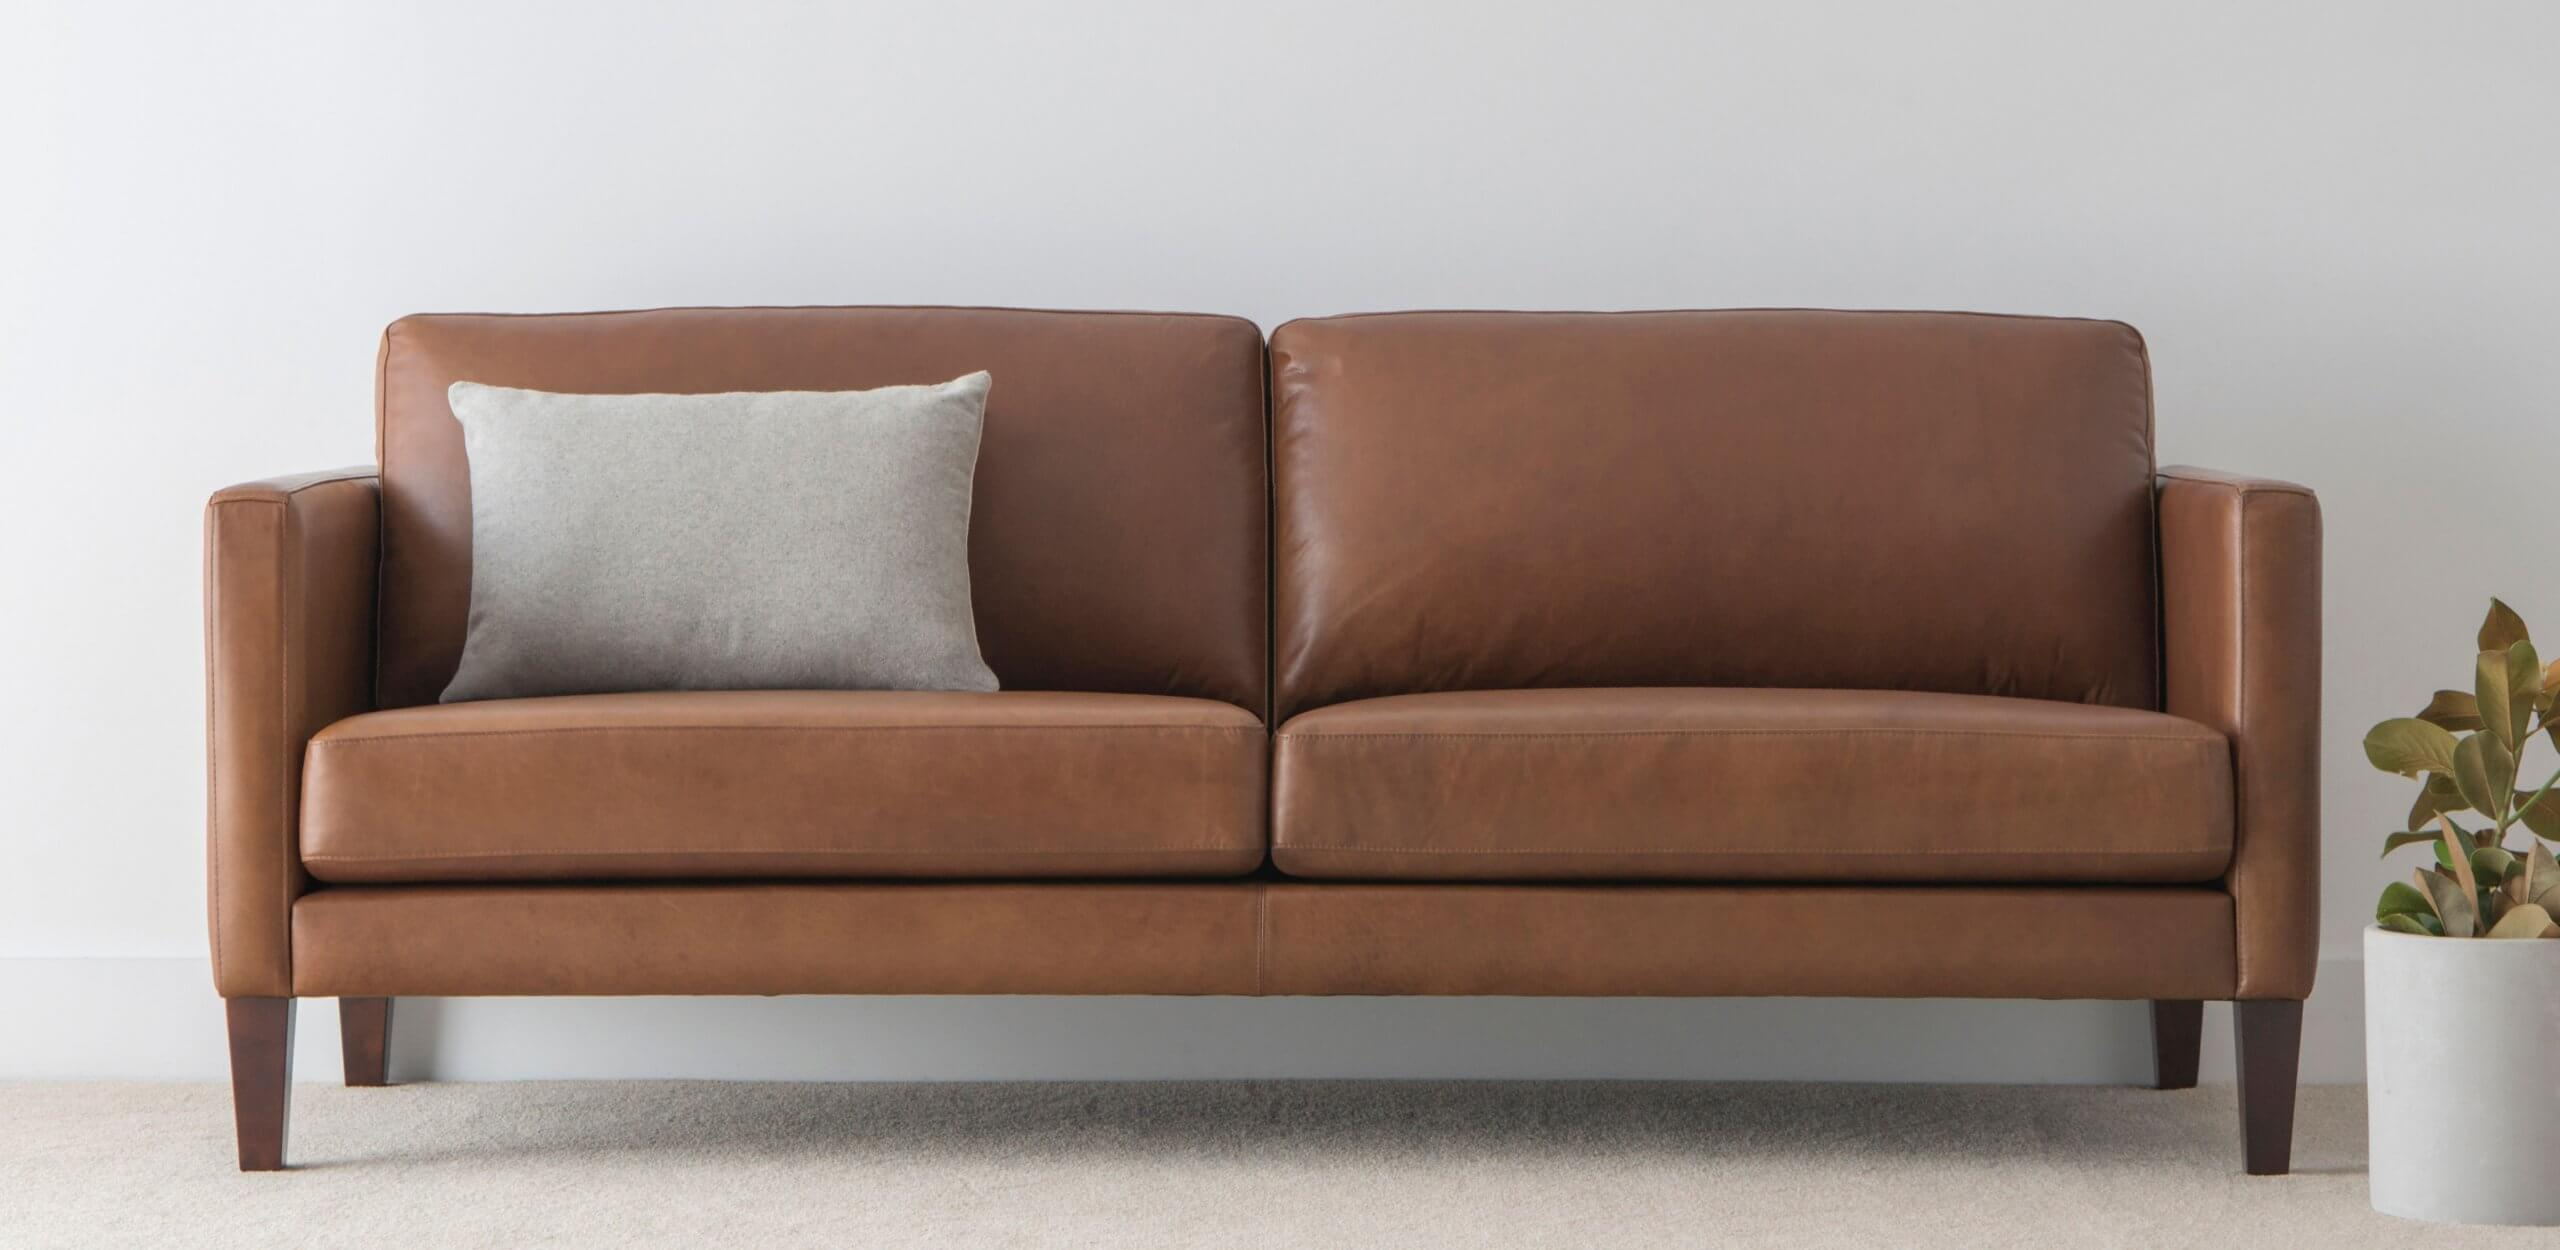 leather sofa upholstered in tan with slim arms and timber legs made in Australia